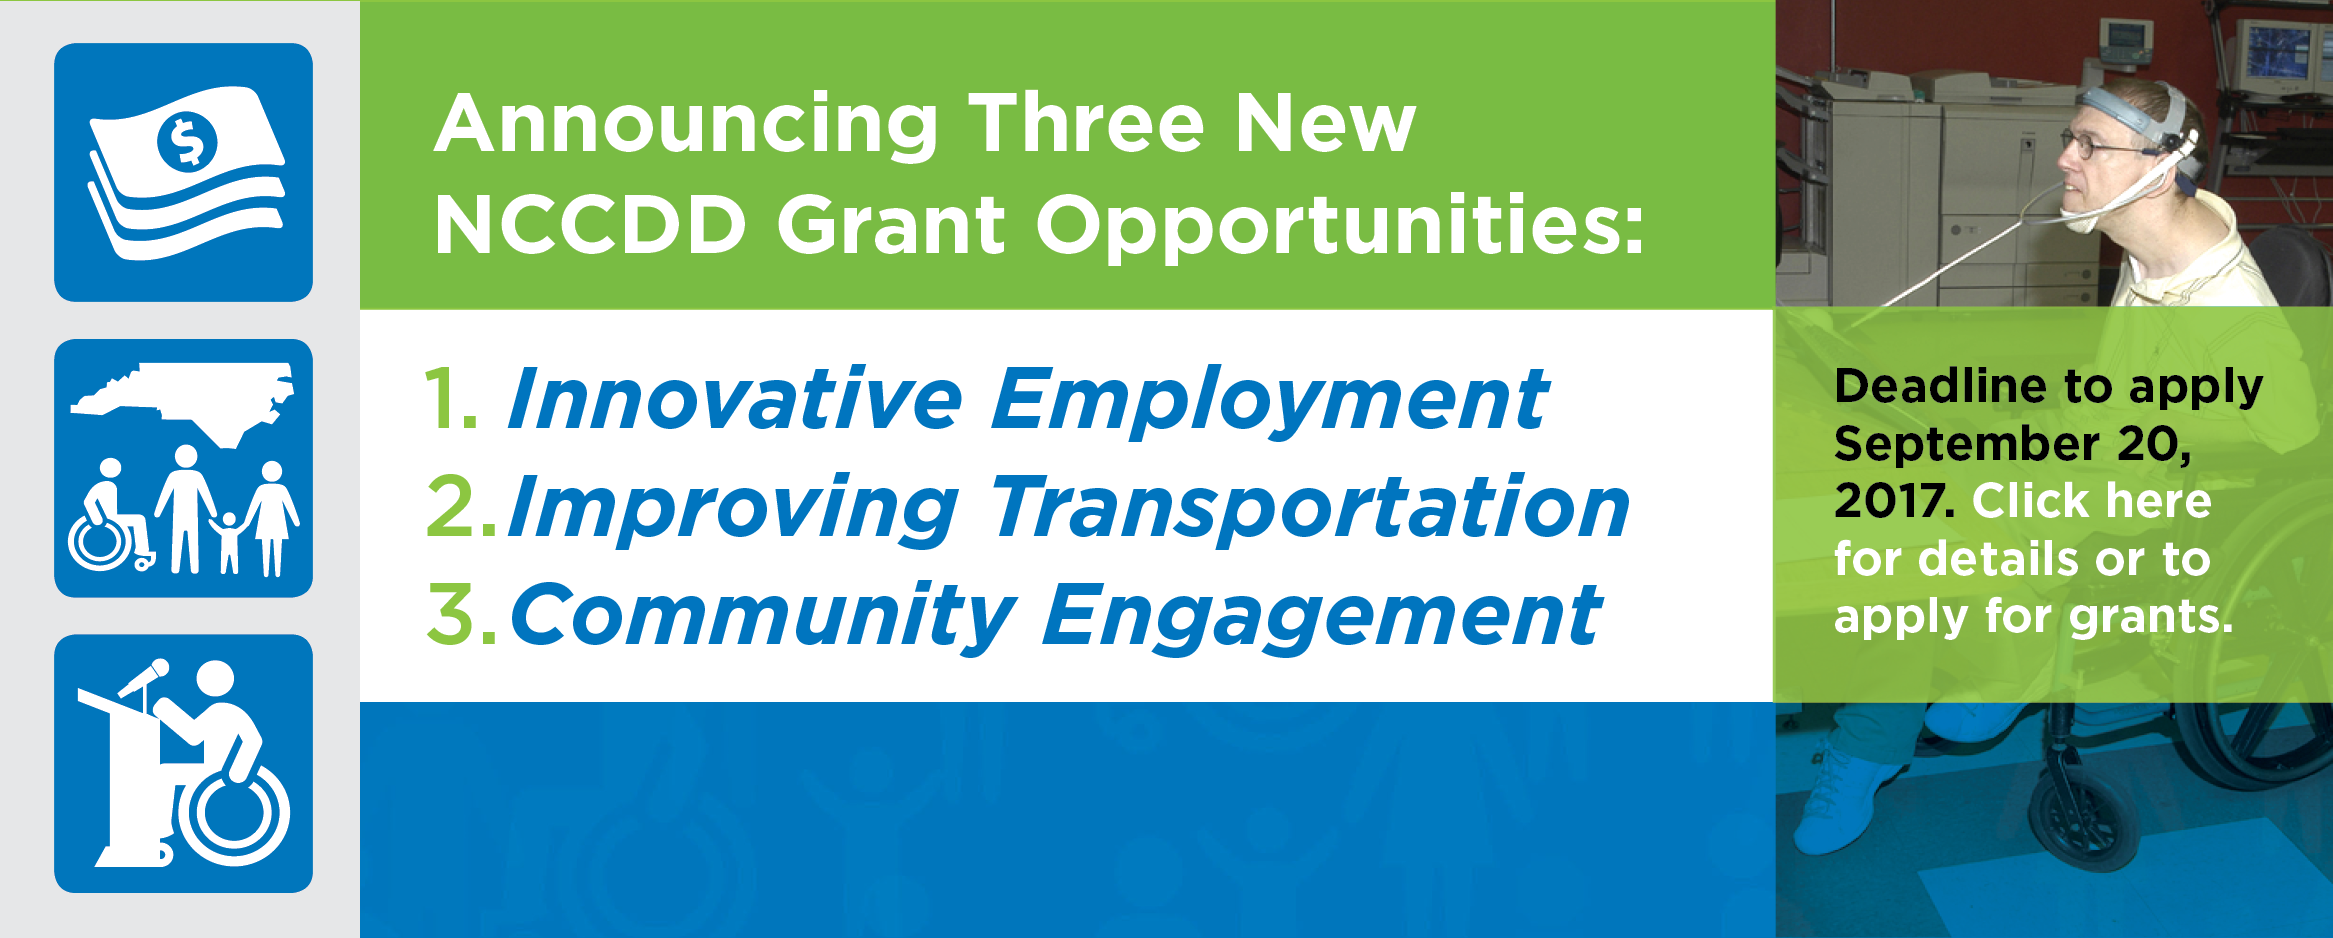 Announcing Three New NCCDD Grant Opportunities! Deadline to apply 9/20/17. Click here for details or to apply for these grants.